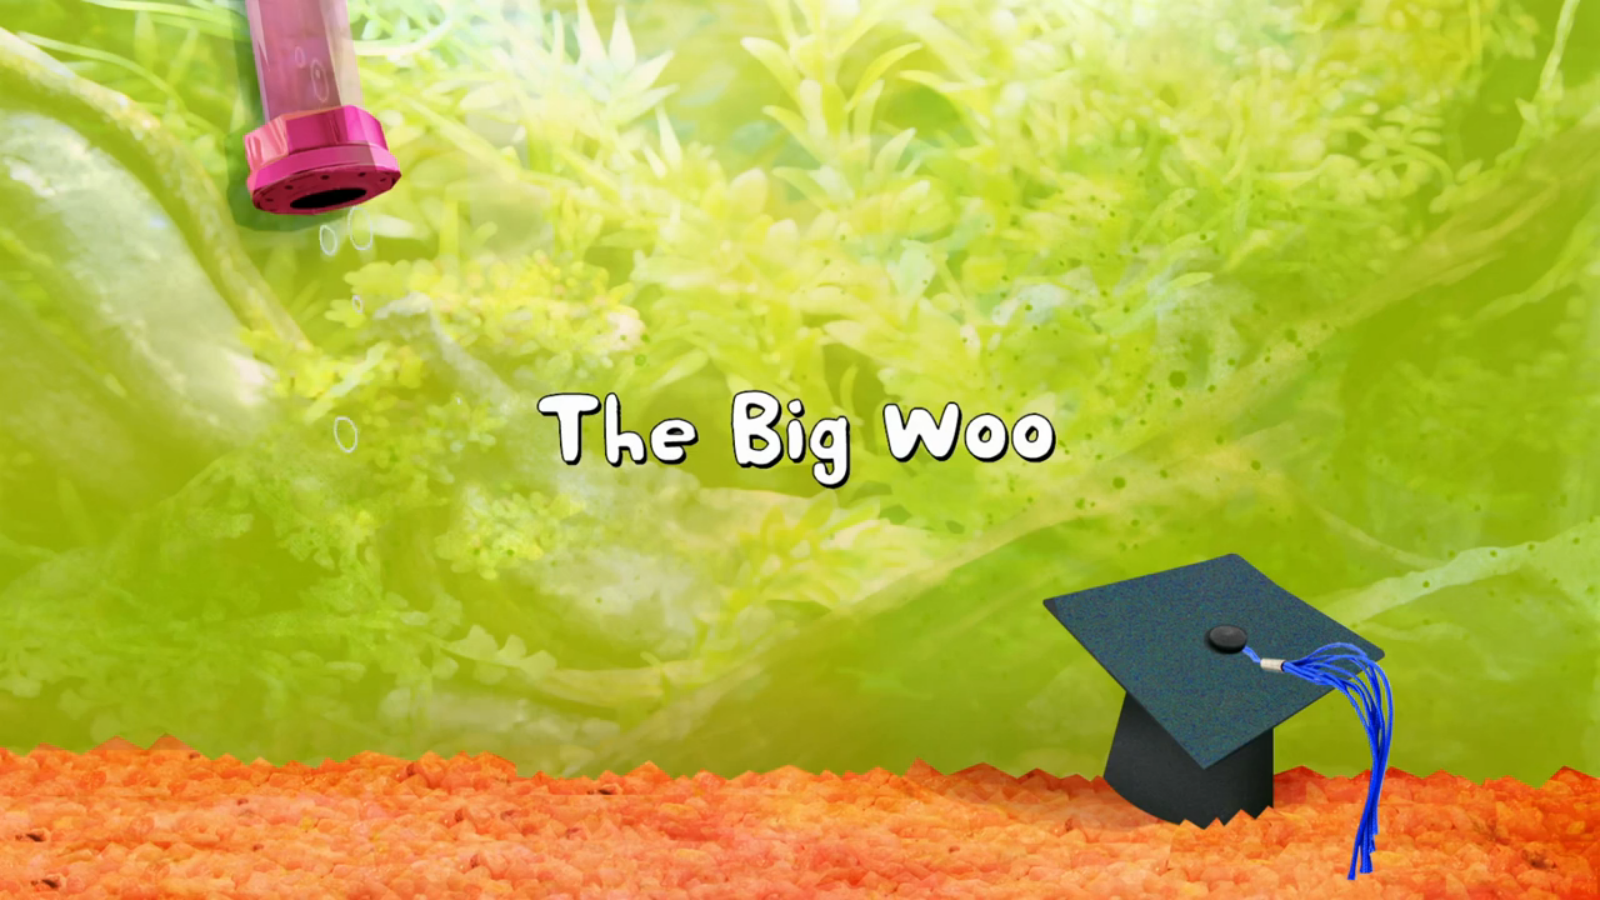 The Big Woo